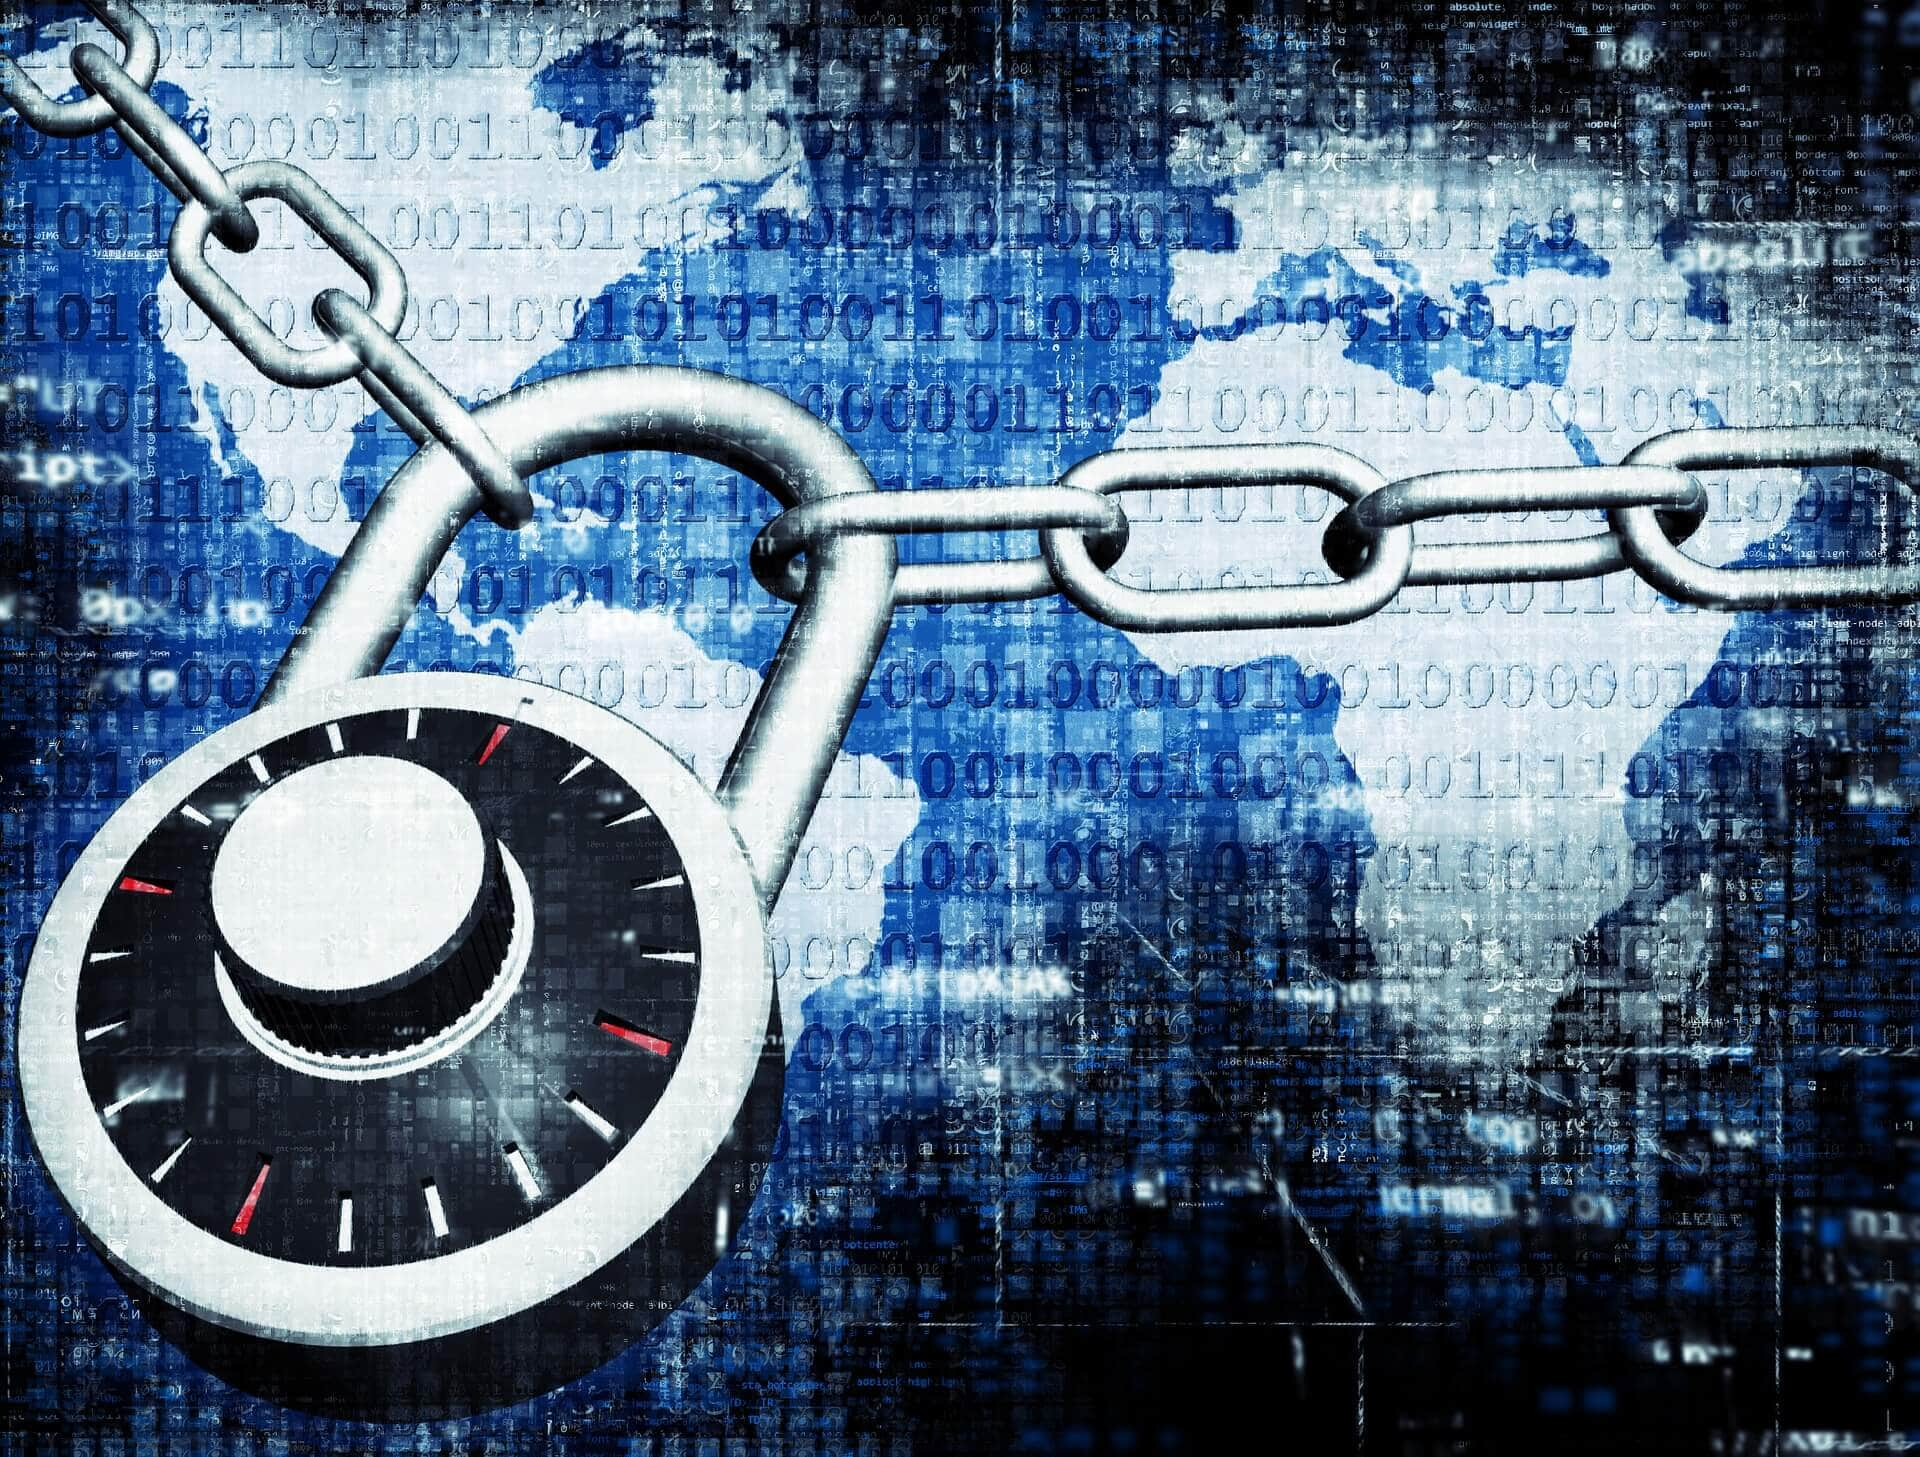 content/fr-fr/images/repository/isc/2020/how-to-protect-your-internet-privacy.jpg